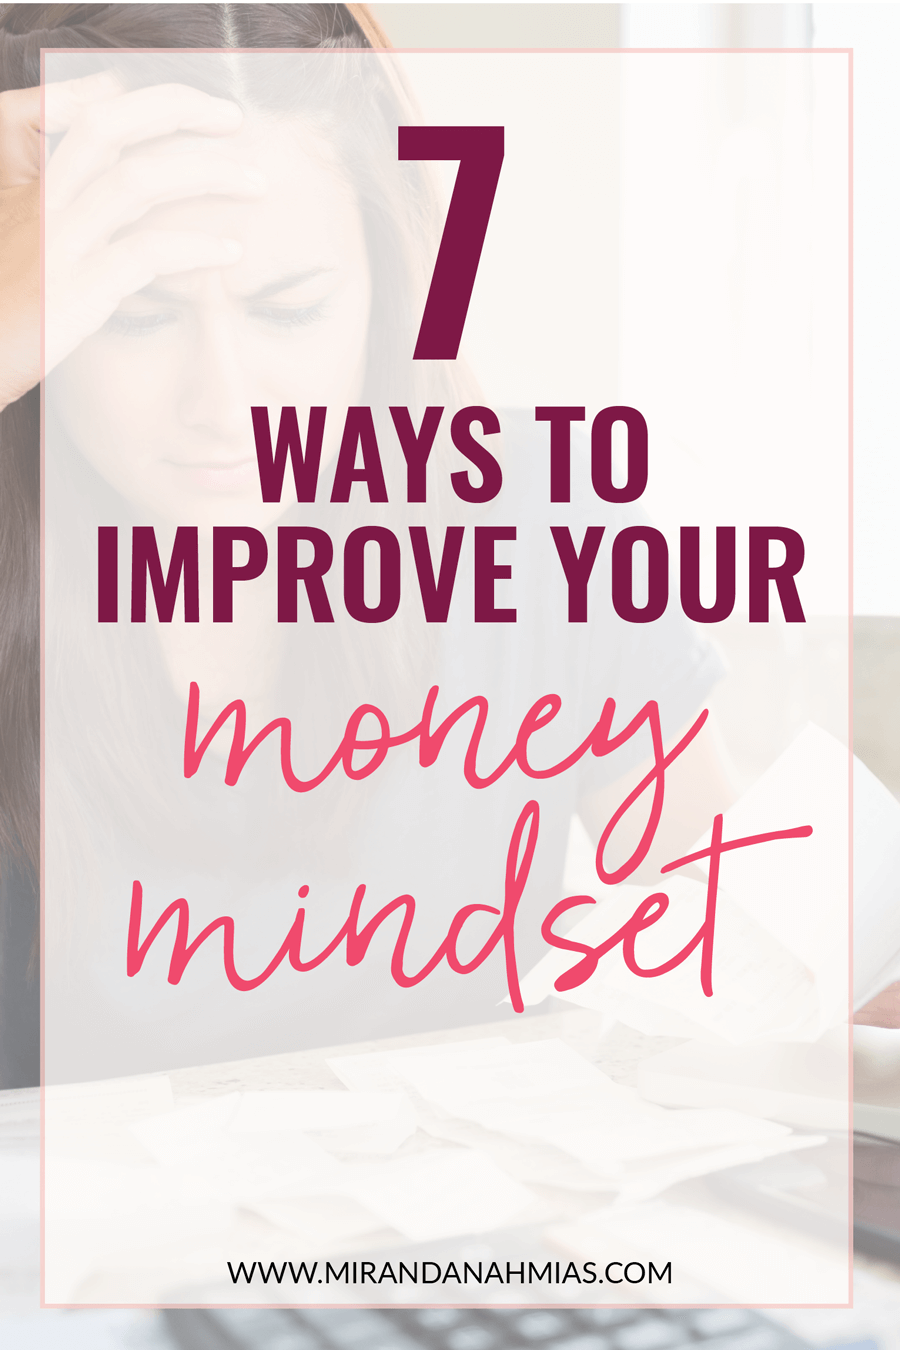 Struggling with money in your business? Here are 7 ways you can improve your money mindset as a female entrepreneur | Miranda Nahmias & Co. — Score New Clients and Explode Your Business with Systemized Marketing